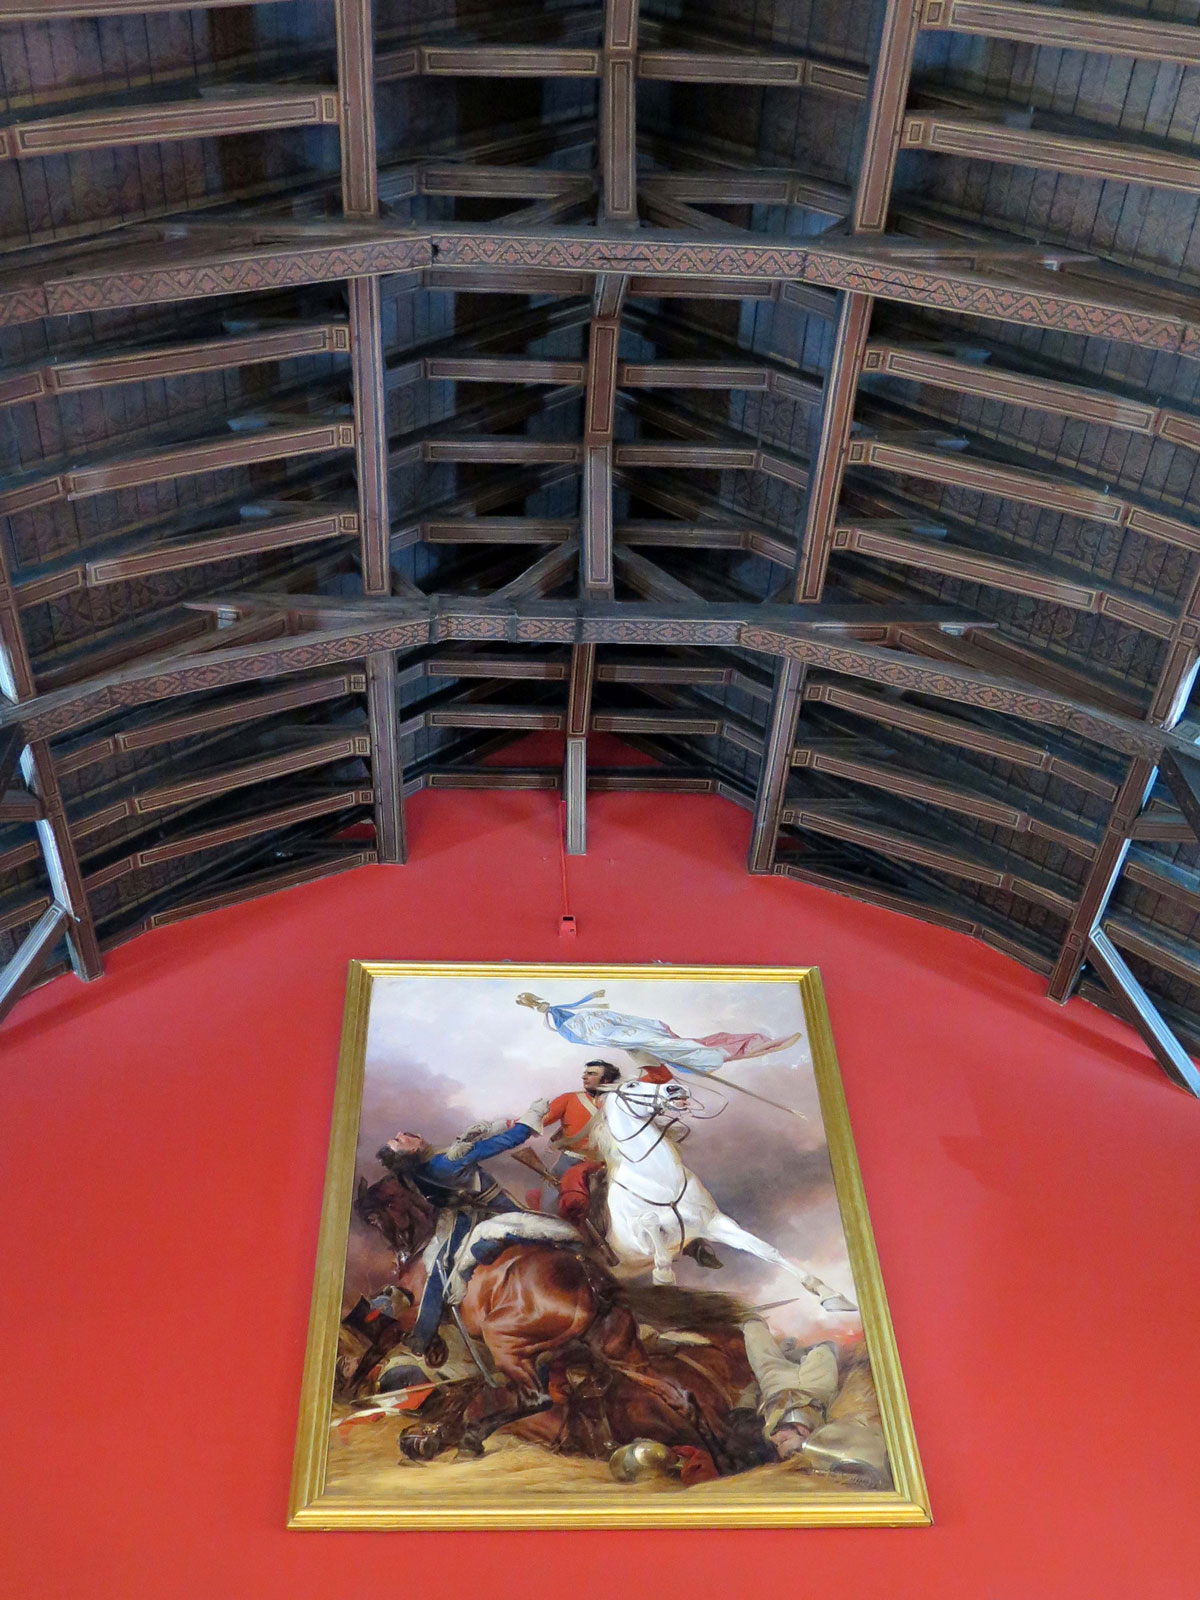 The Hammerbeam Roof and a painting showing a scene from the Battle of Waterloo